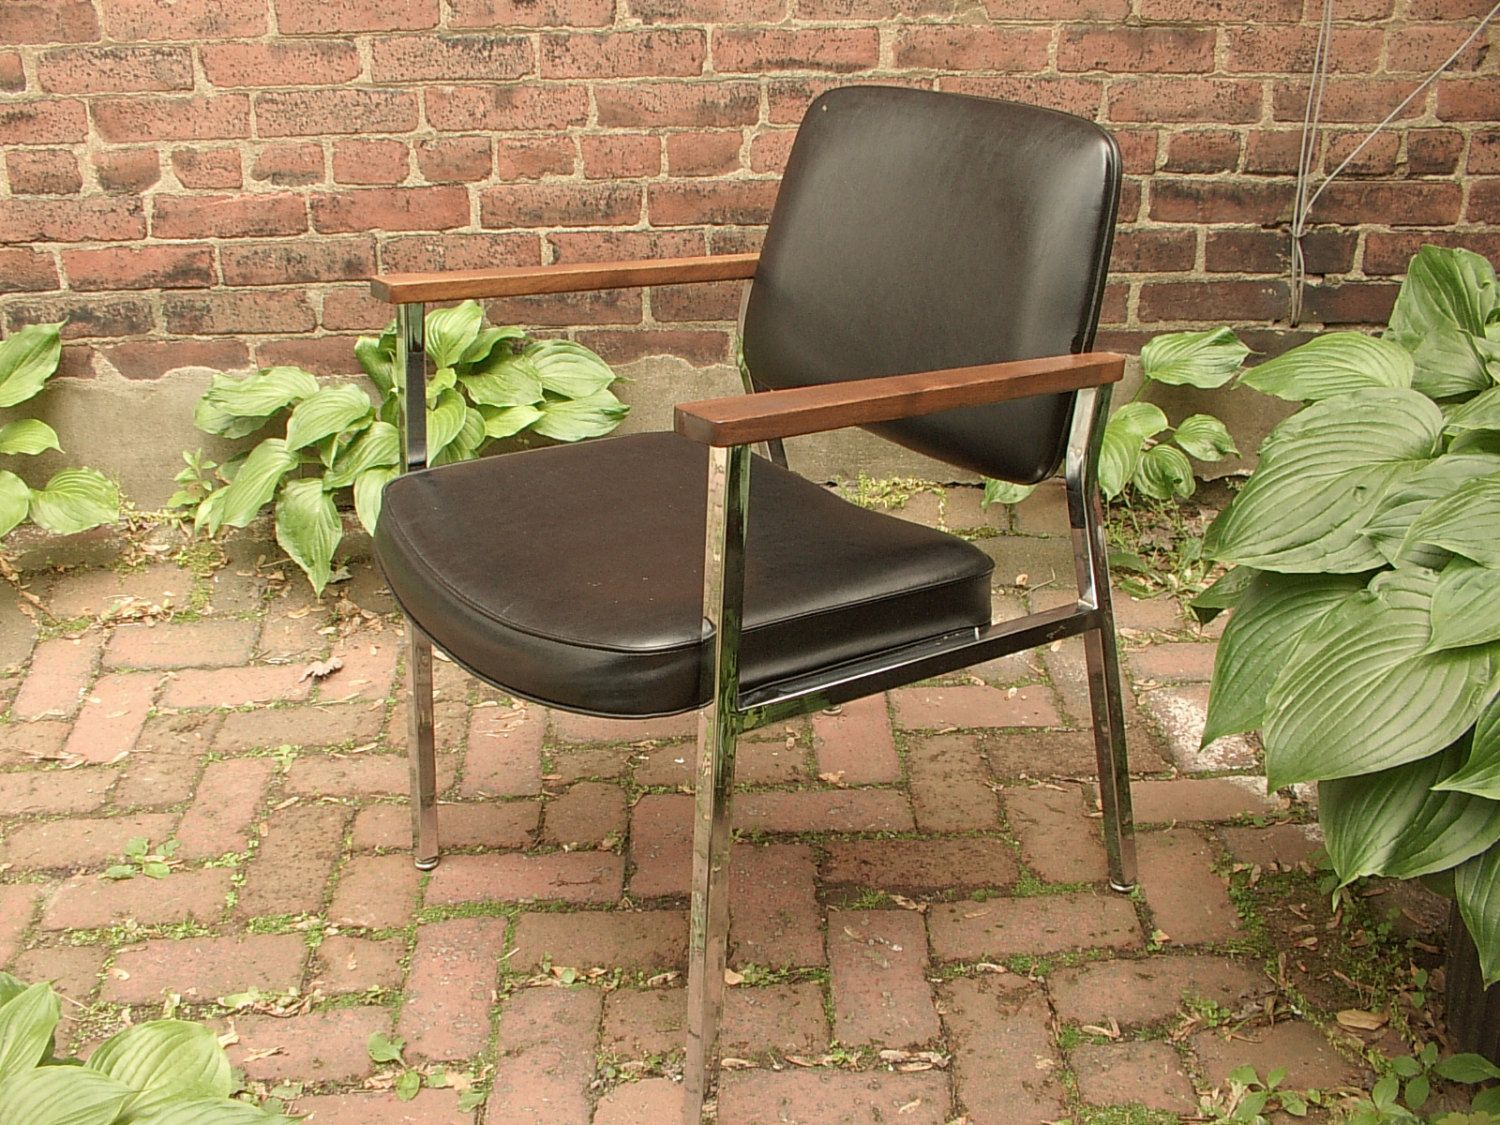 Discover Ideas About Black Leather Chair. Vintage Union Chrome Office Chair,  Mid Century Modern ...